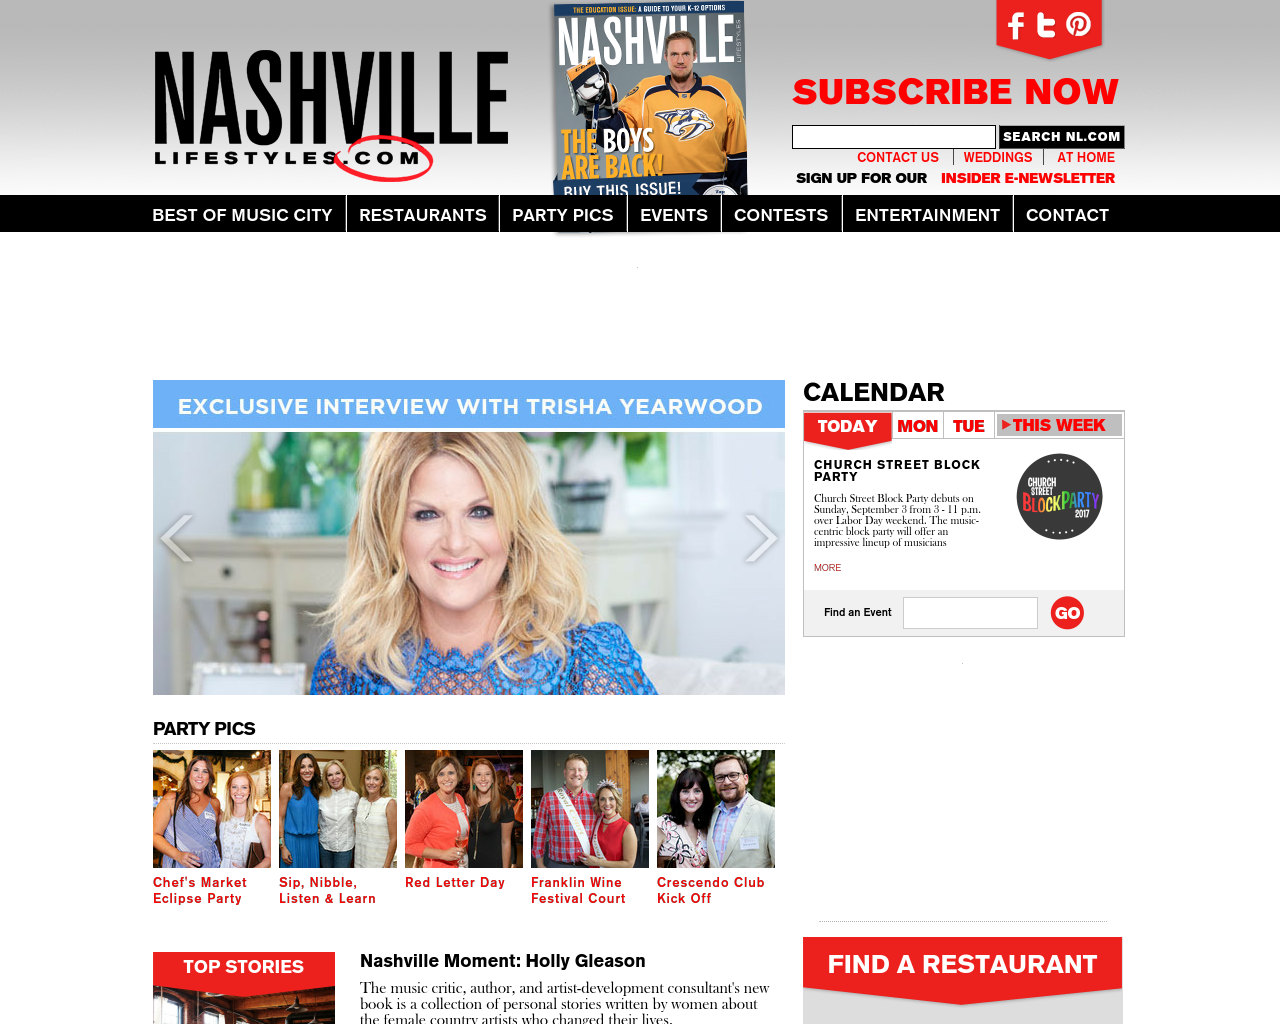 Nashville-Lifestyles.com-Advertising-Reviews-Pricing